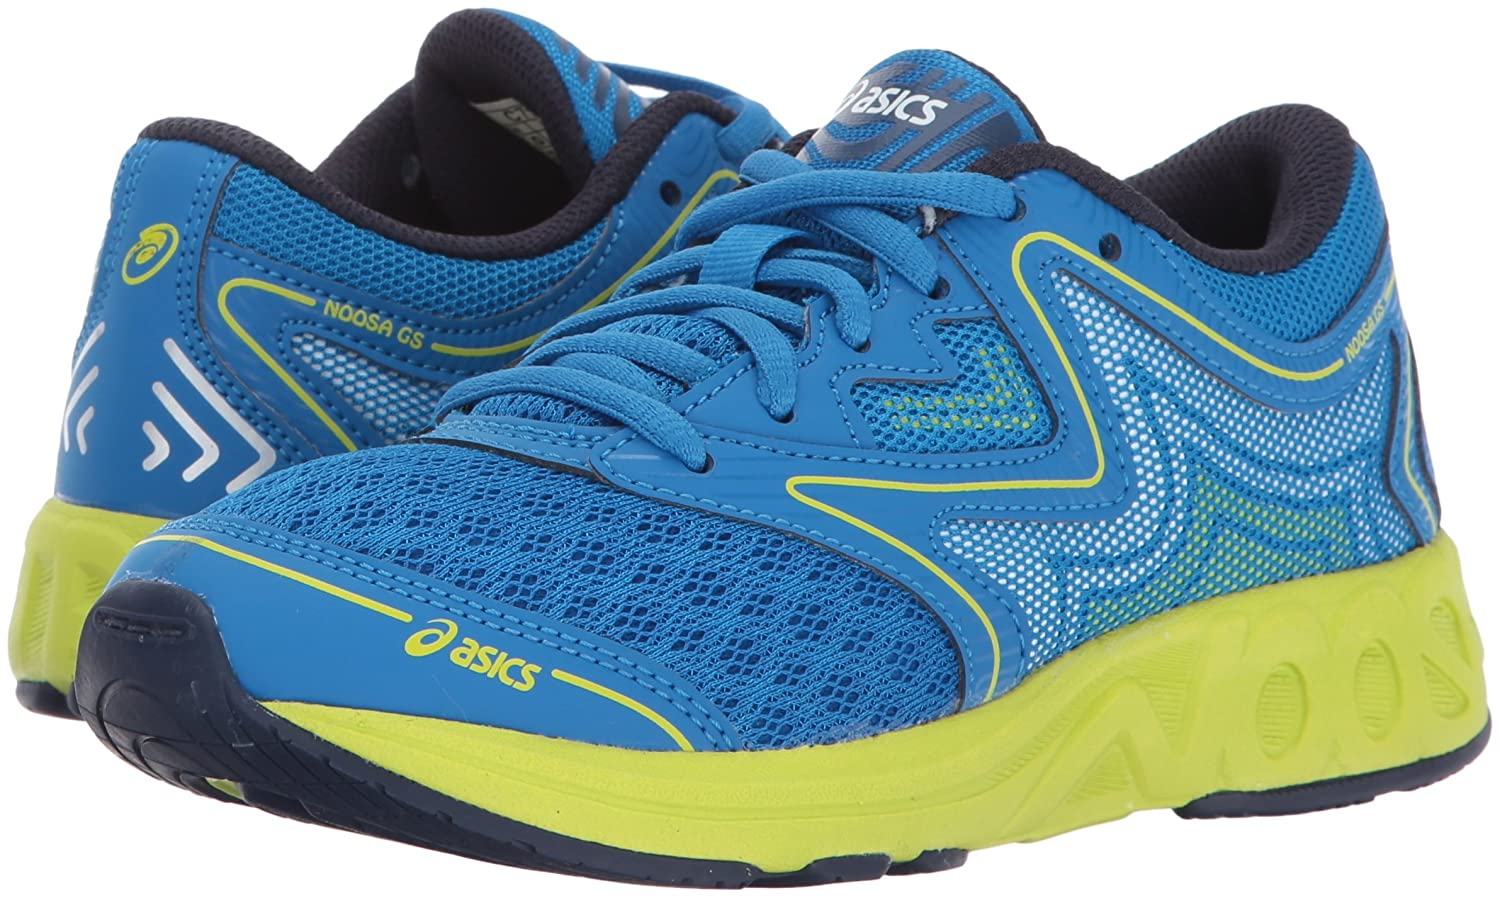 7c6ac62ad06d ASICS Kids Noosa GS Running Shoe  Buy Online at Low Prices in India -  Amazon.in